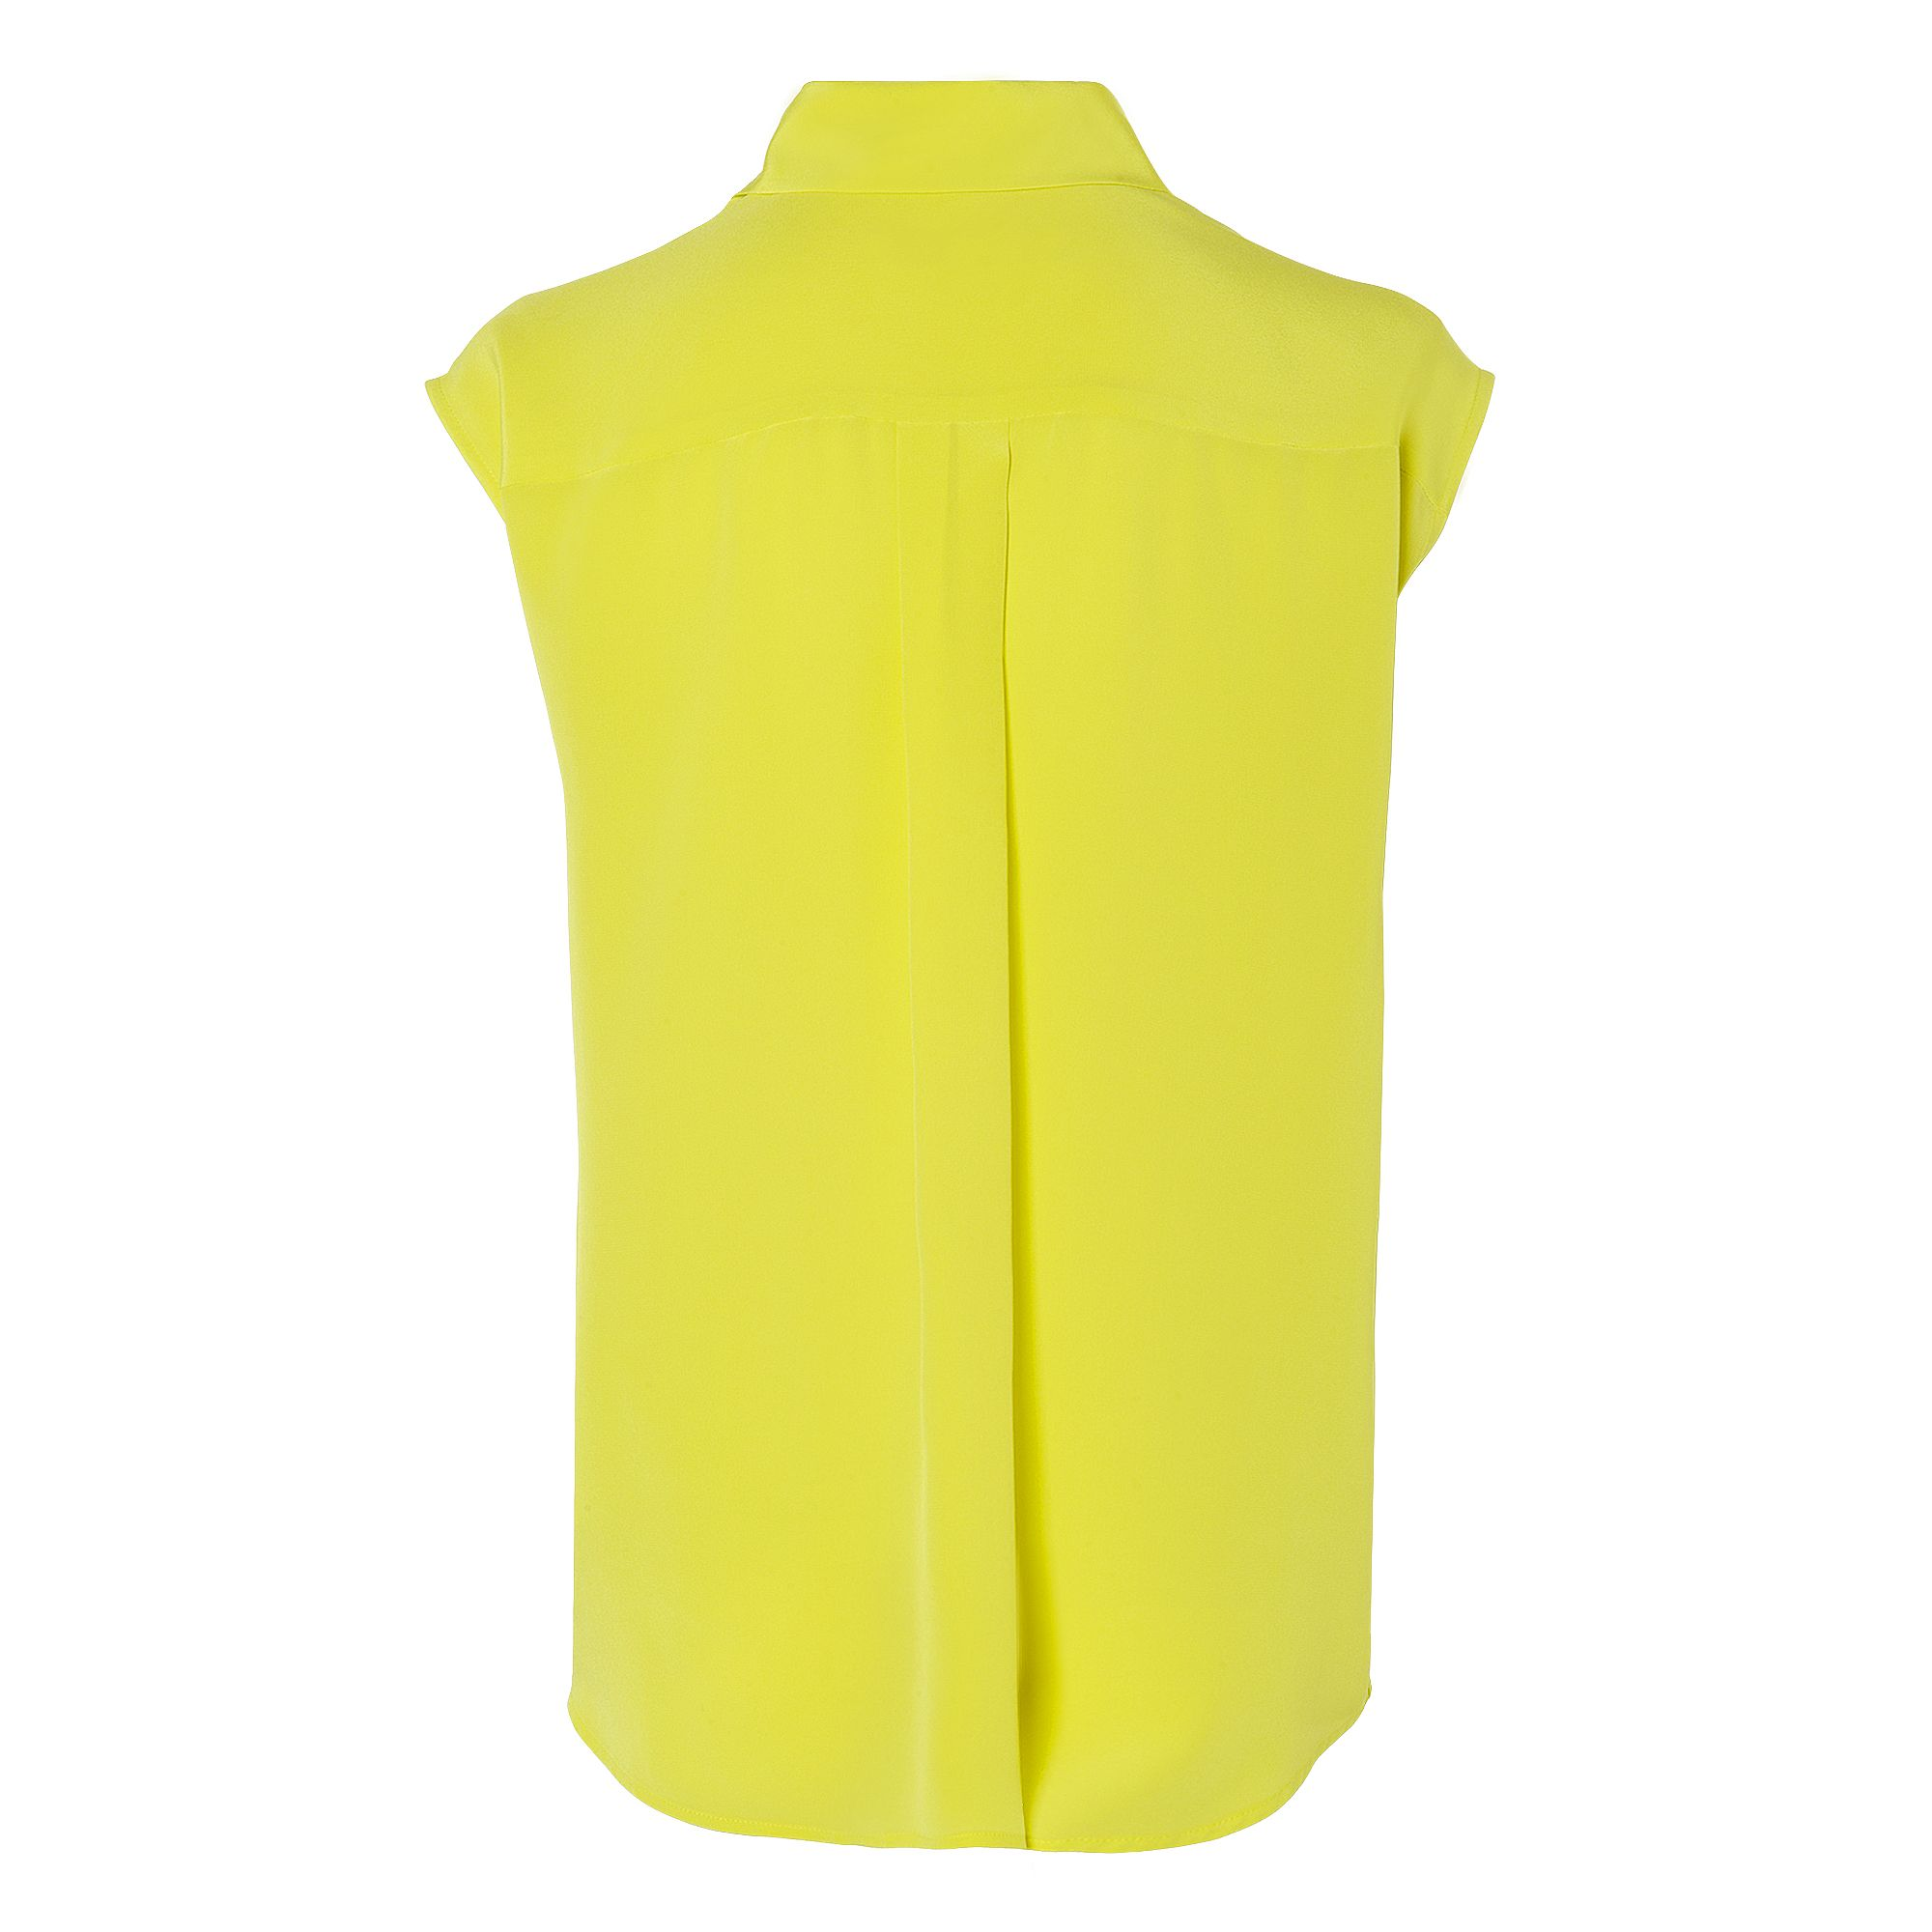 Toledos sleeveless shirt